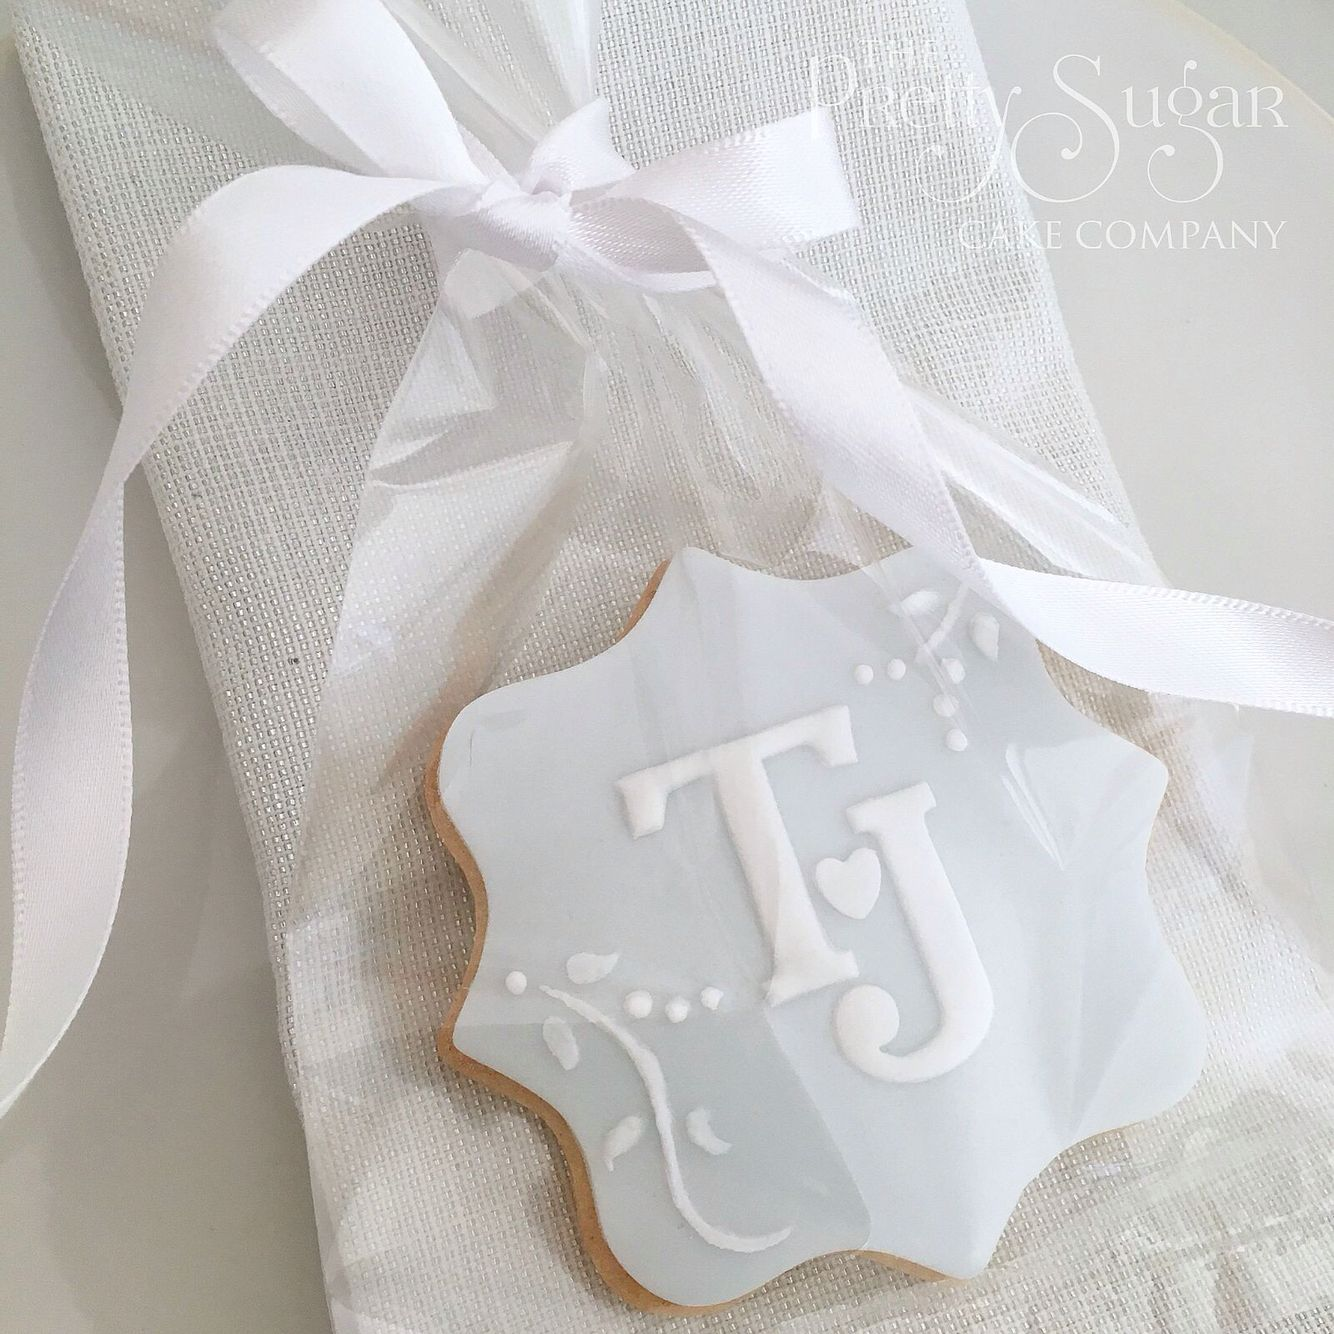 Cookie initials wedding favours | cake decoration | Pinterest ...